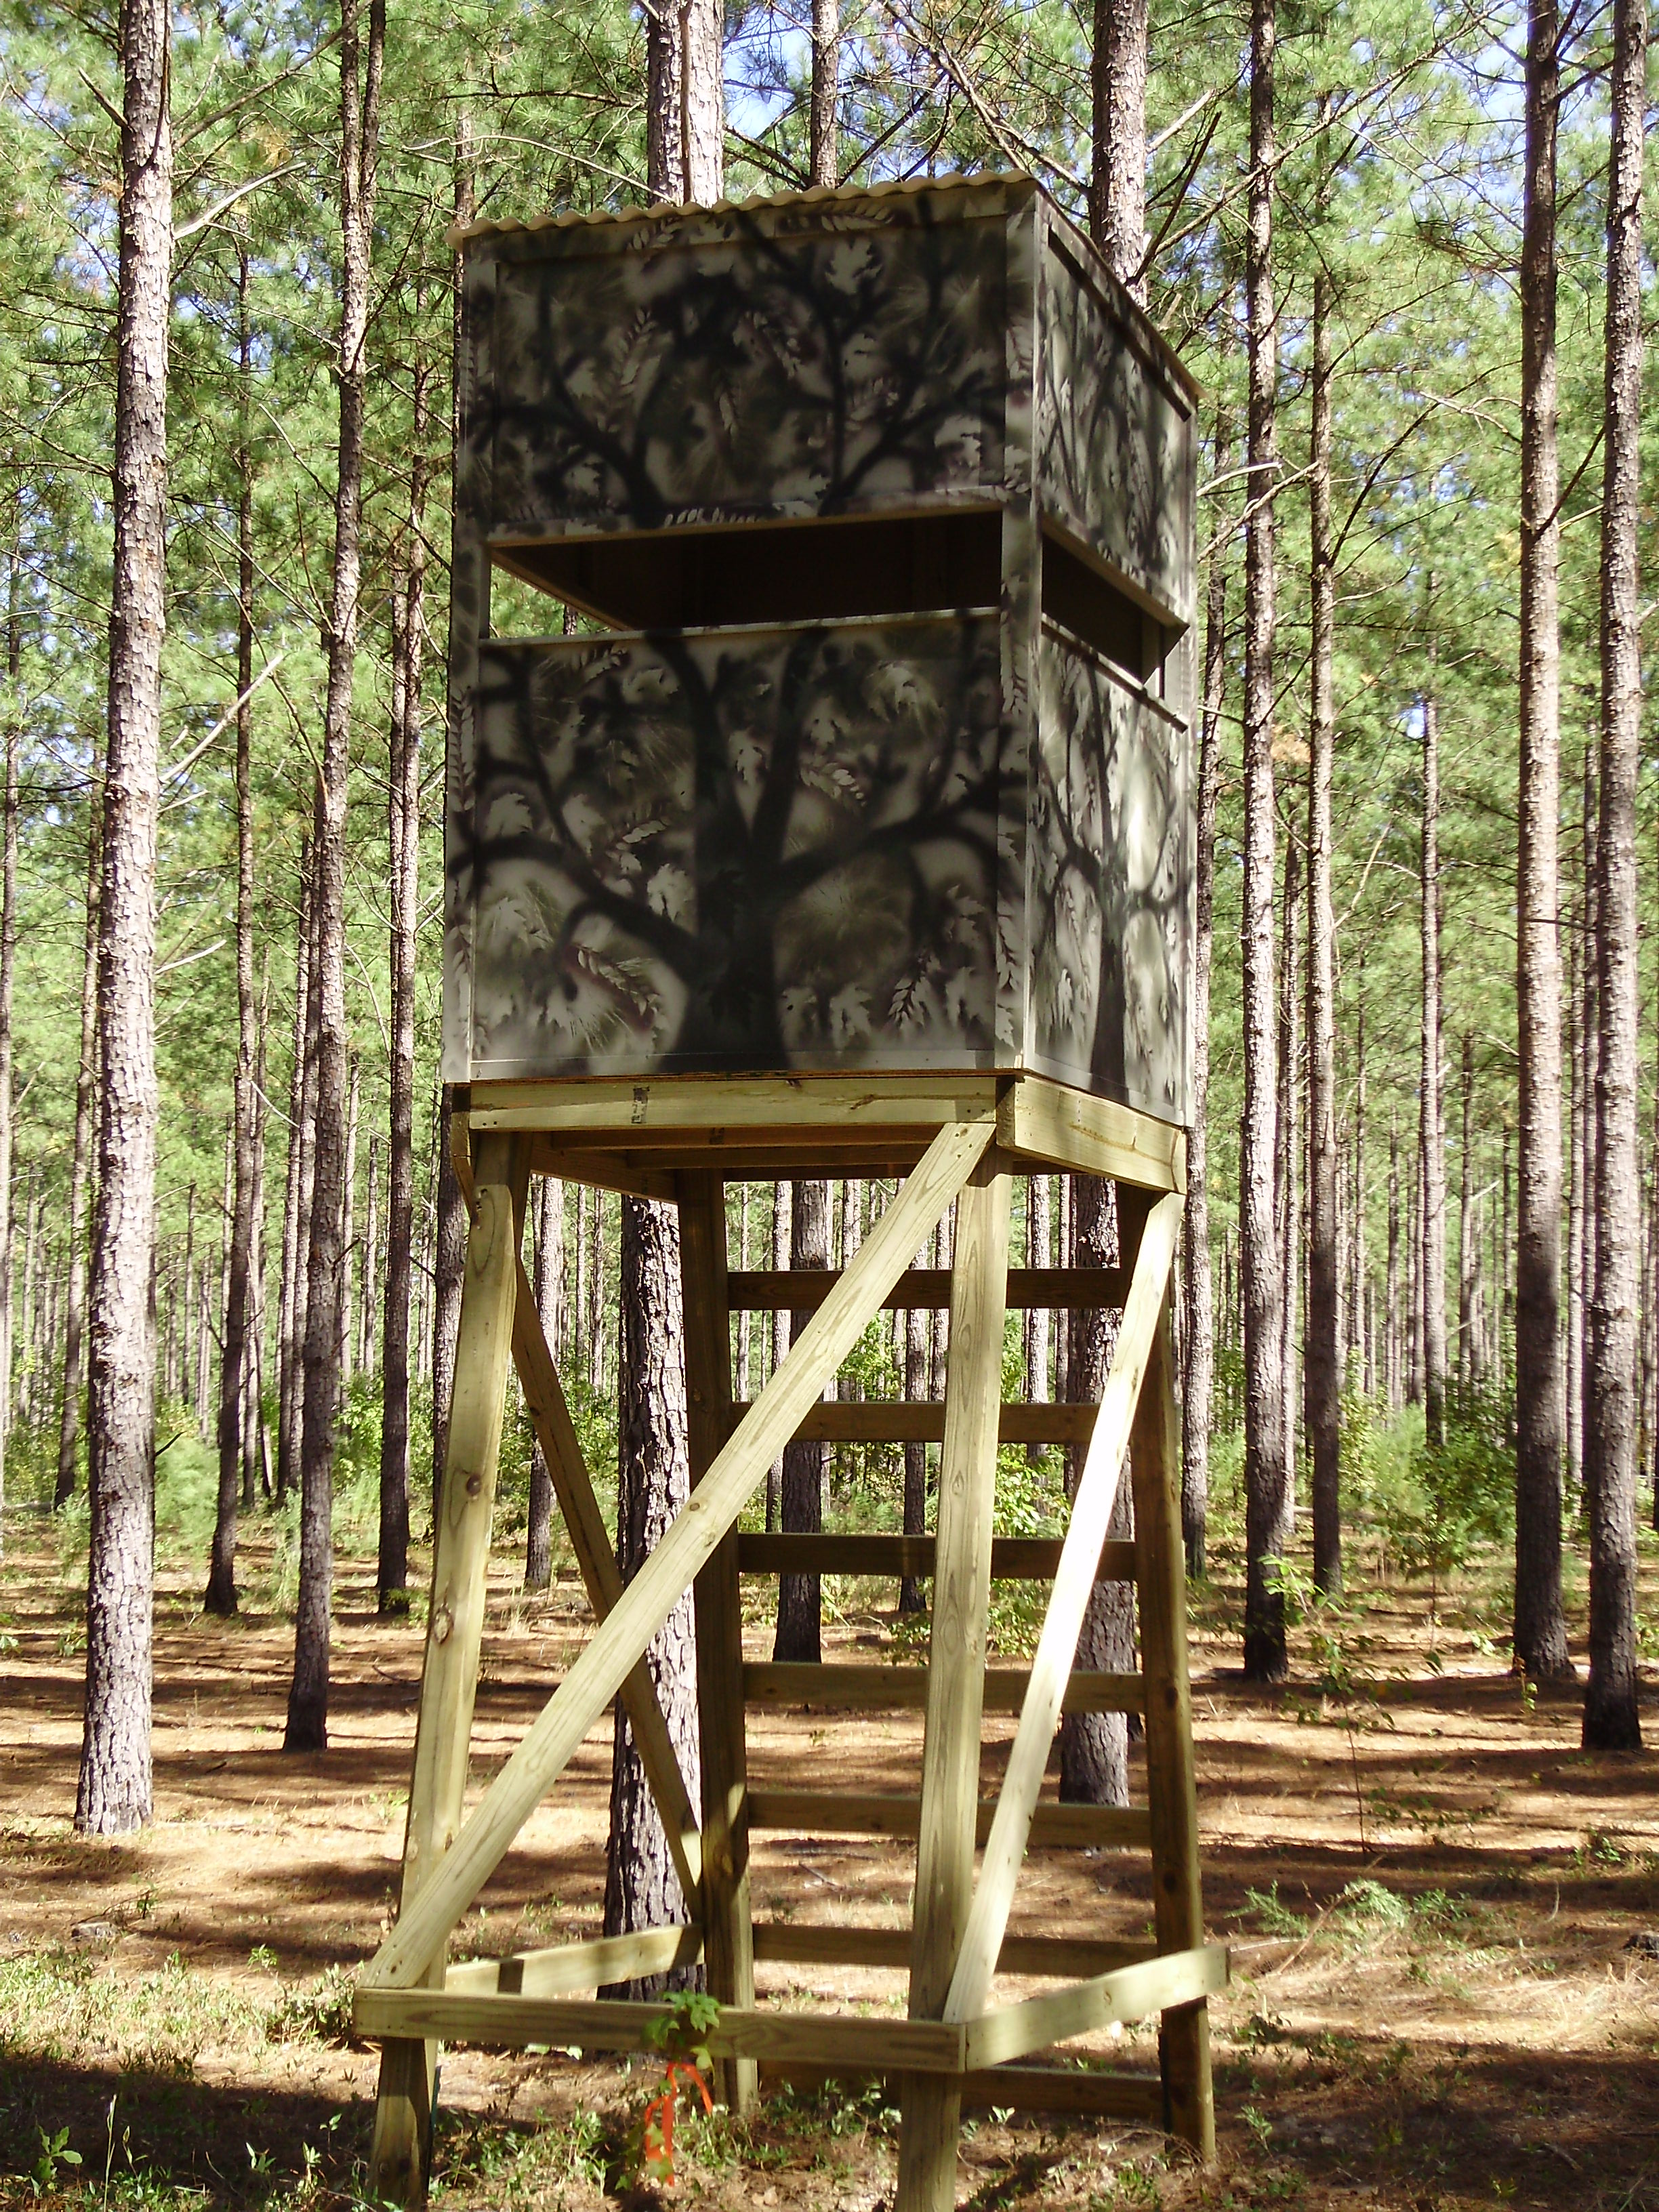 Wooden Deer Stands http://plucoutdoors.wordpress.com/deer-stands/